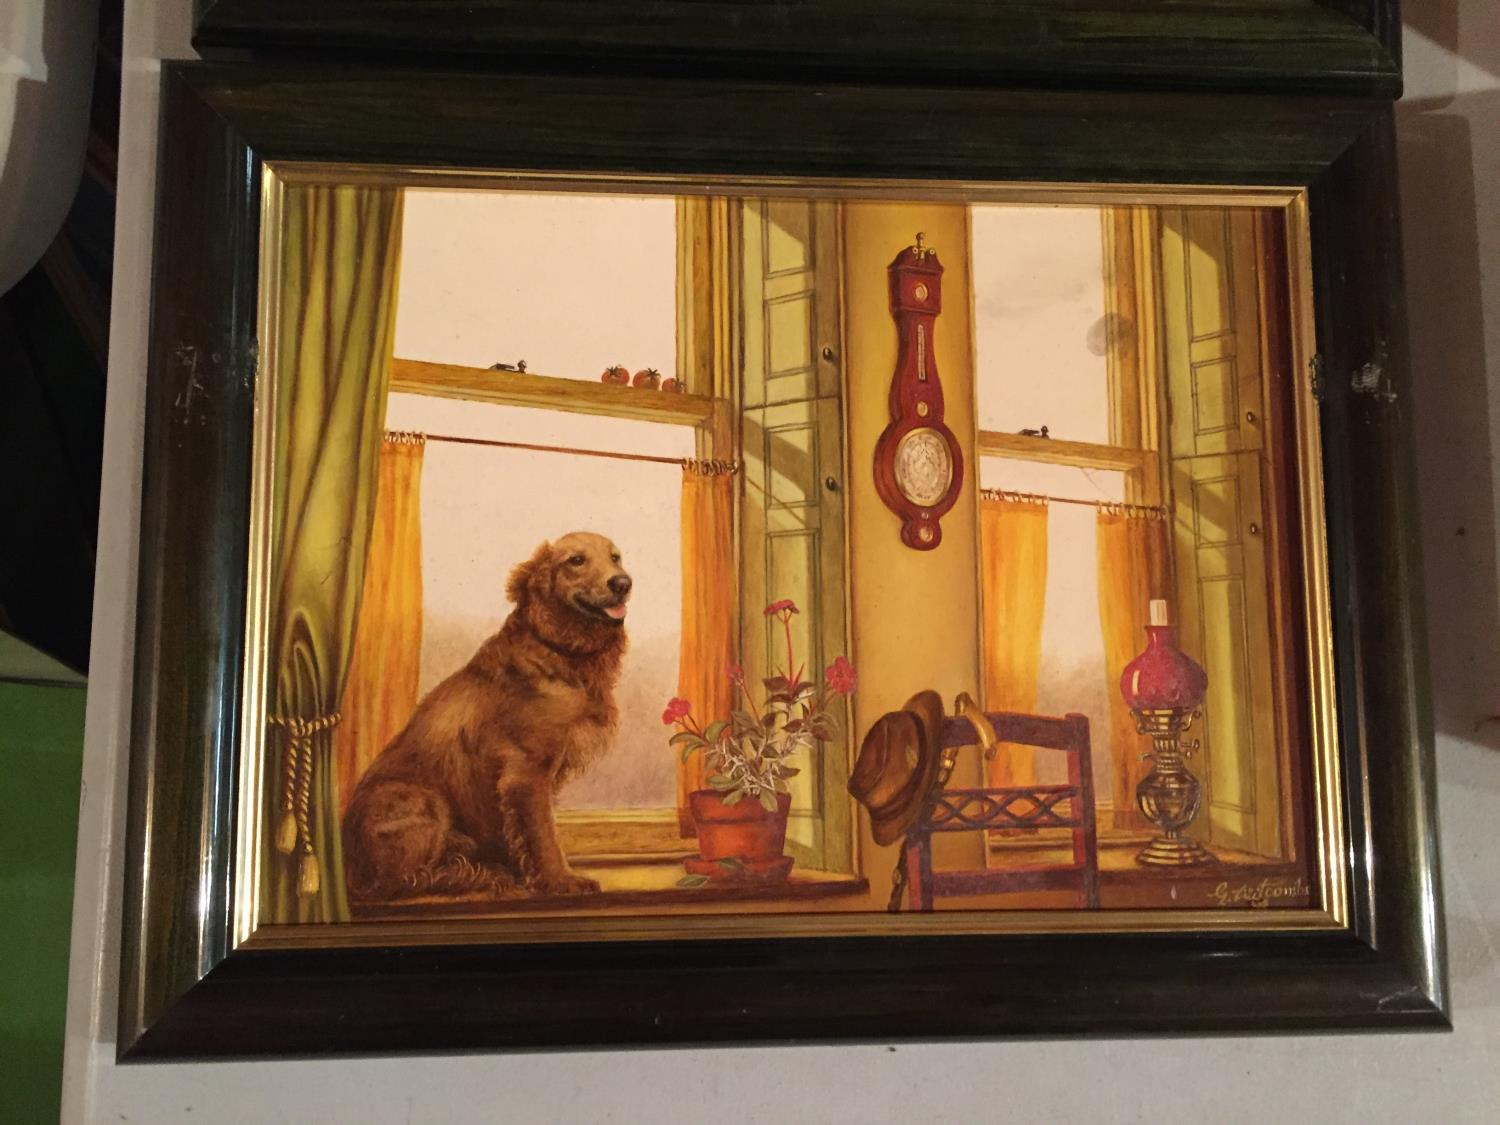 TWO FRAMED PAINTINGS OF A CAT IN A WINDOW AND A DOG IN A WINDOW - Image 4 of 6